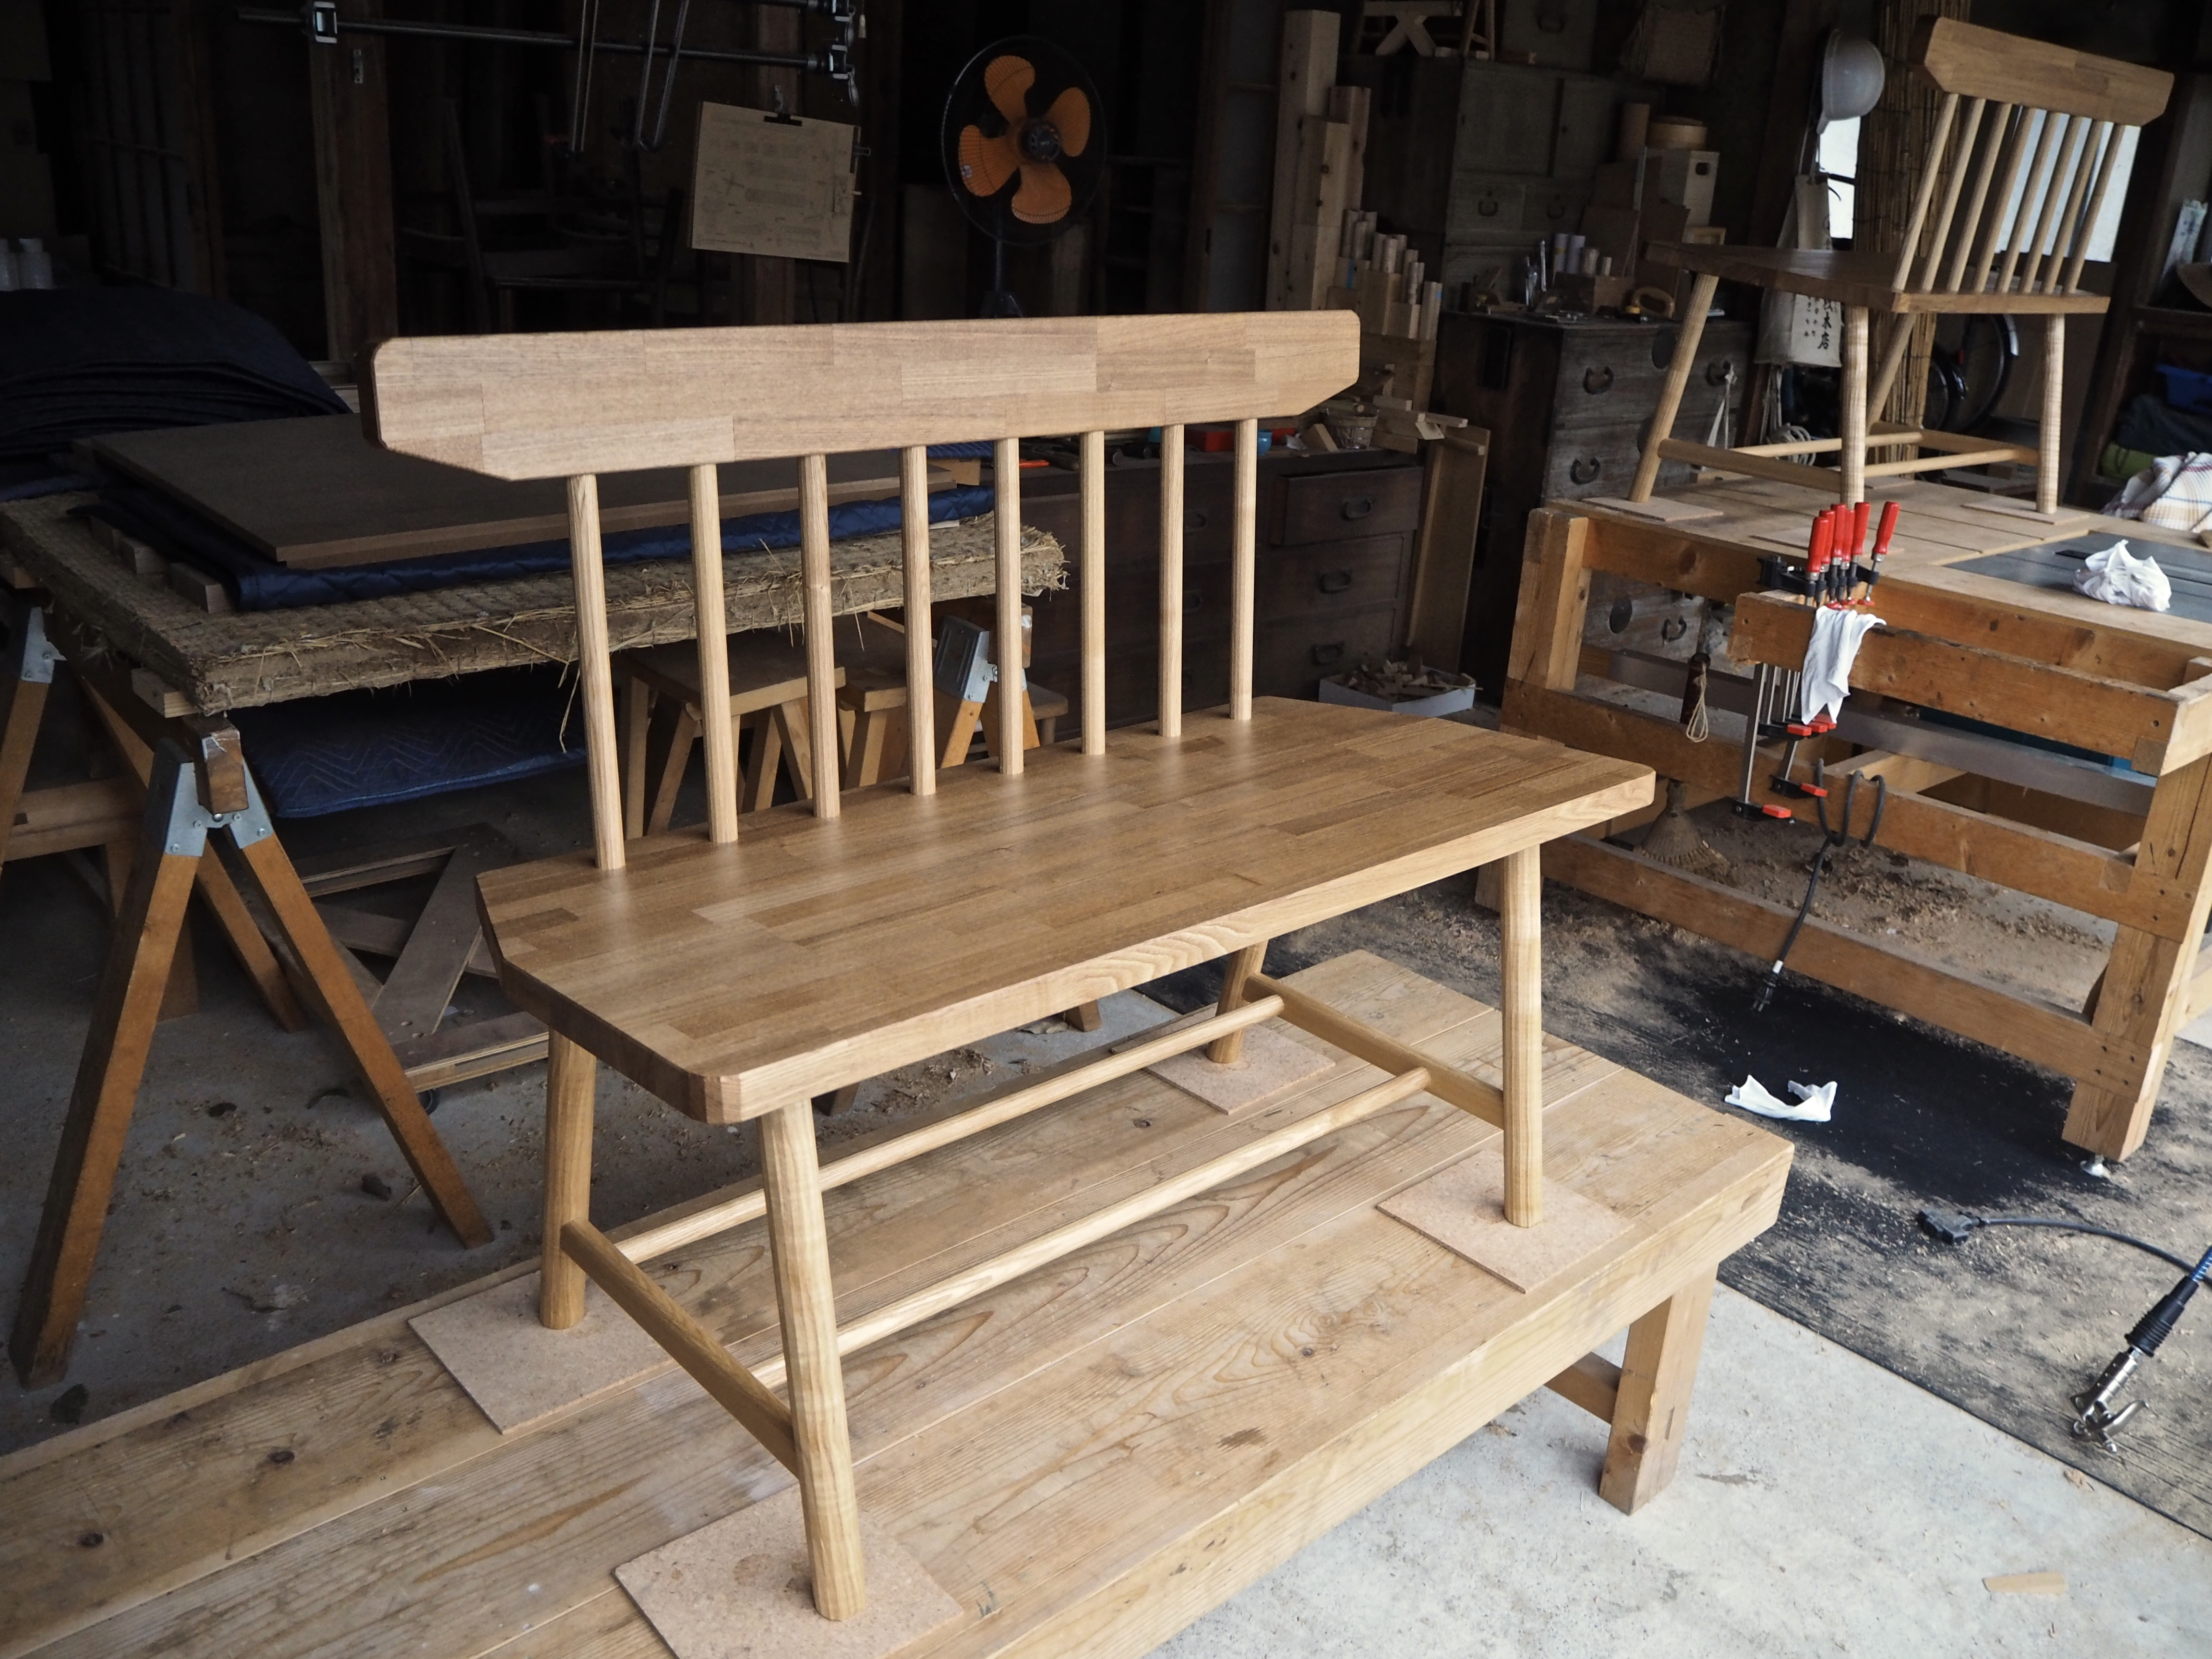 LOCALE twin benches